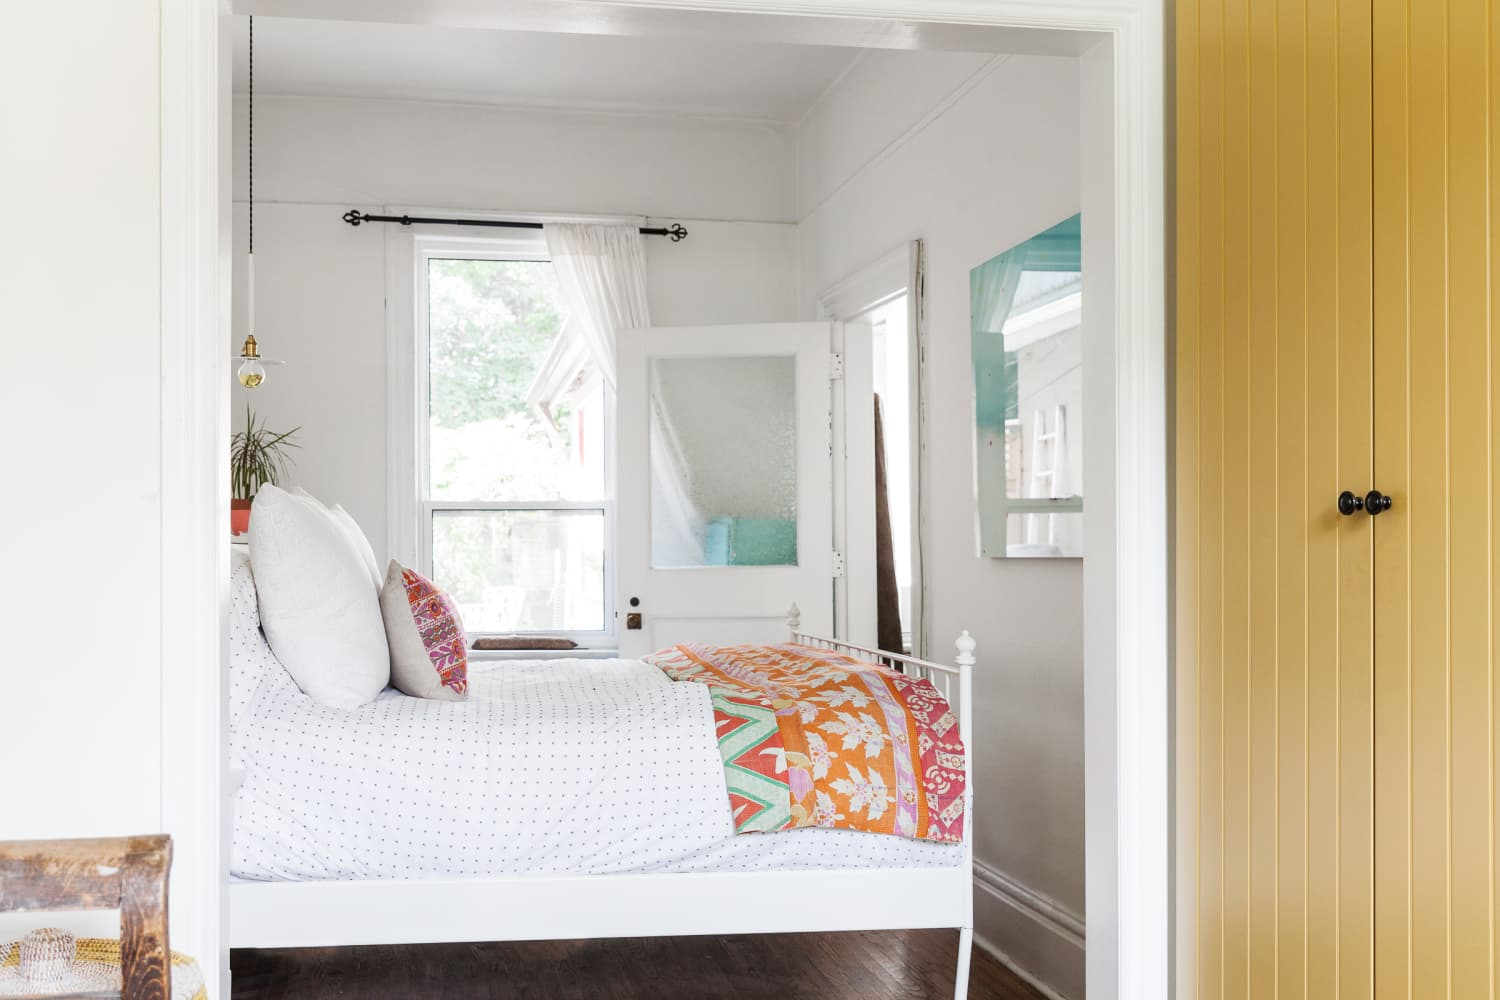 8-best-beds-for-small-spaces-2021-platform-storage-more